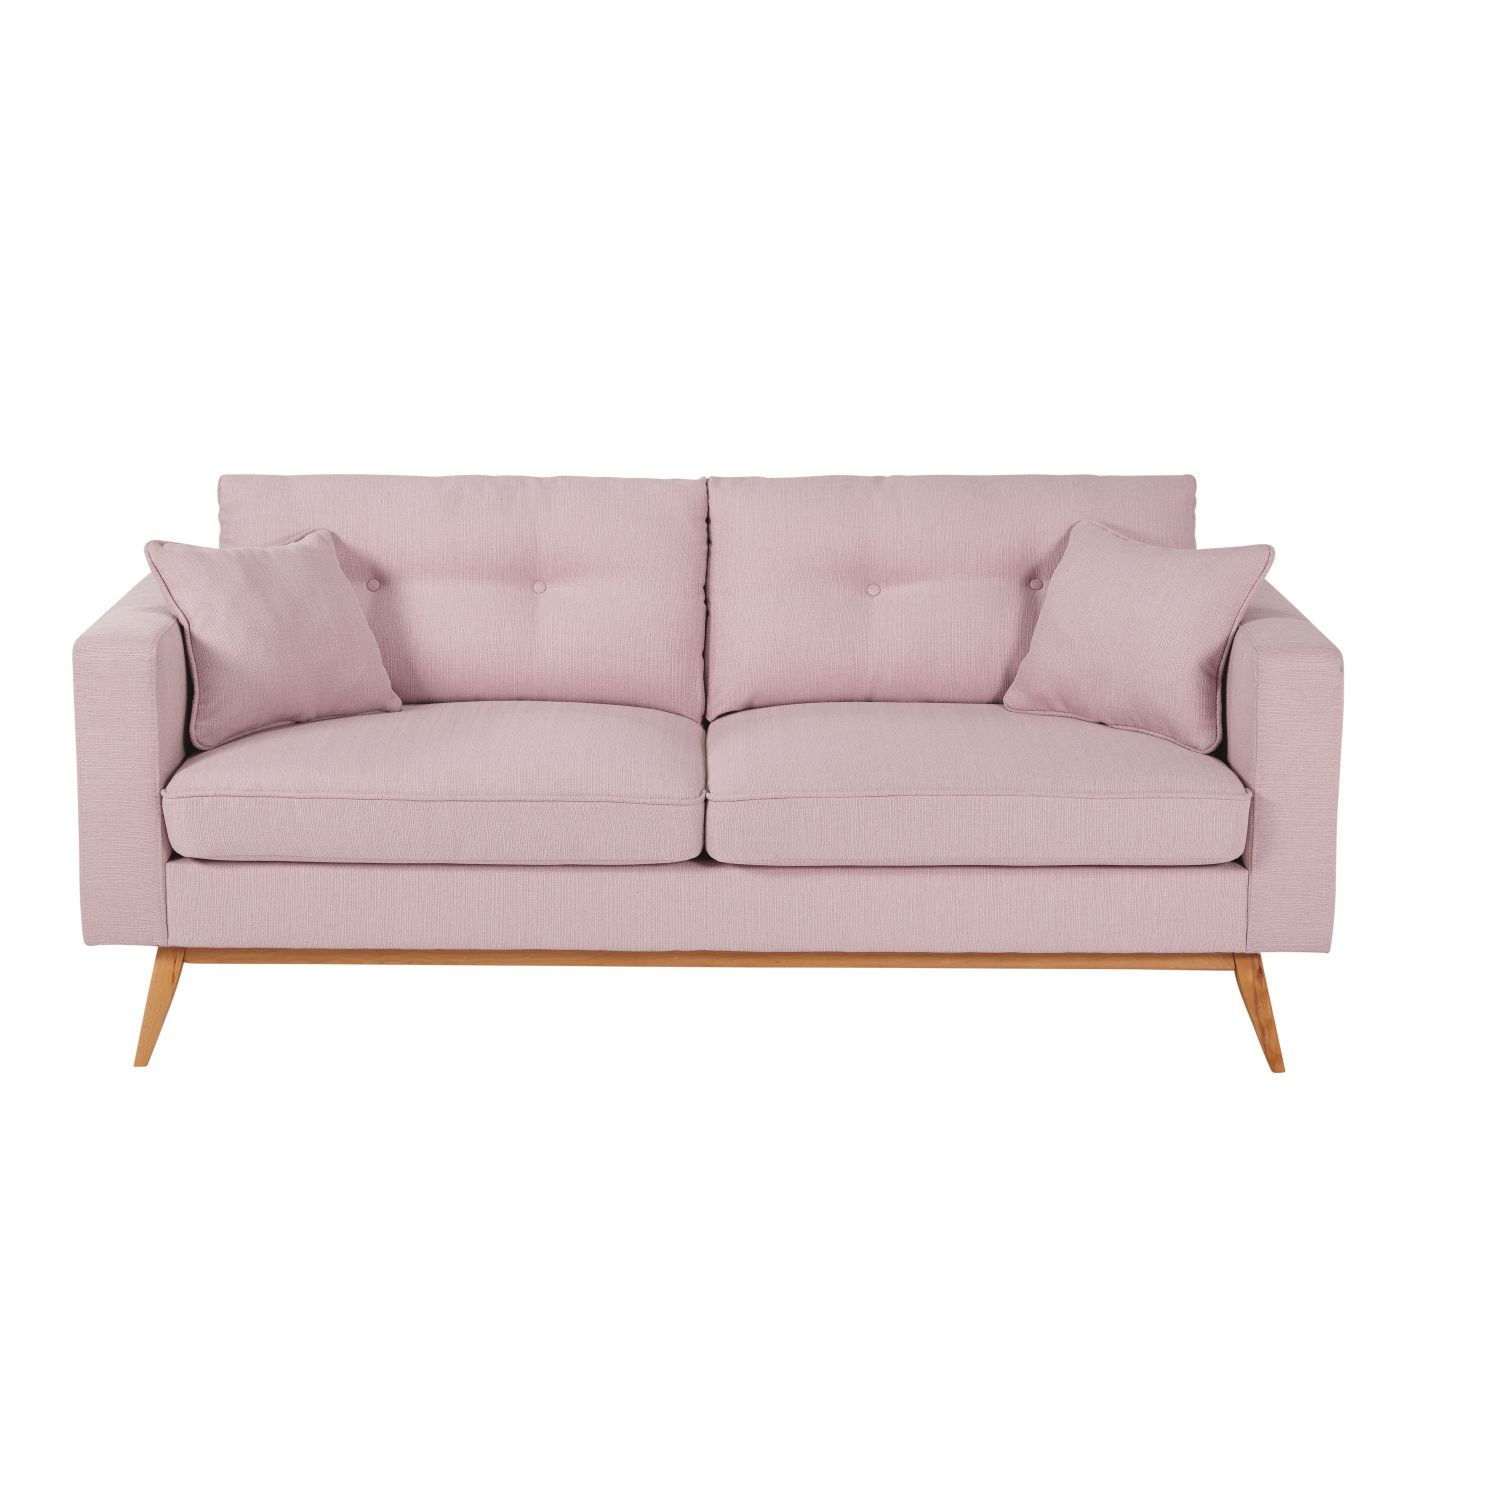 light pink sofa bed sectional sleeper with recliner frasesdeconquista